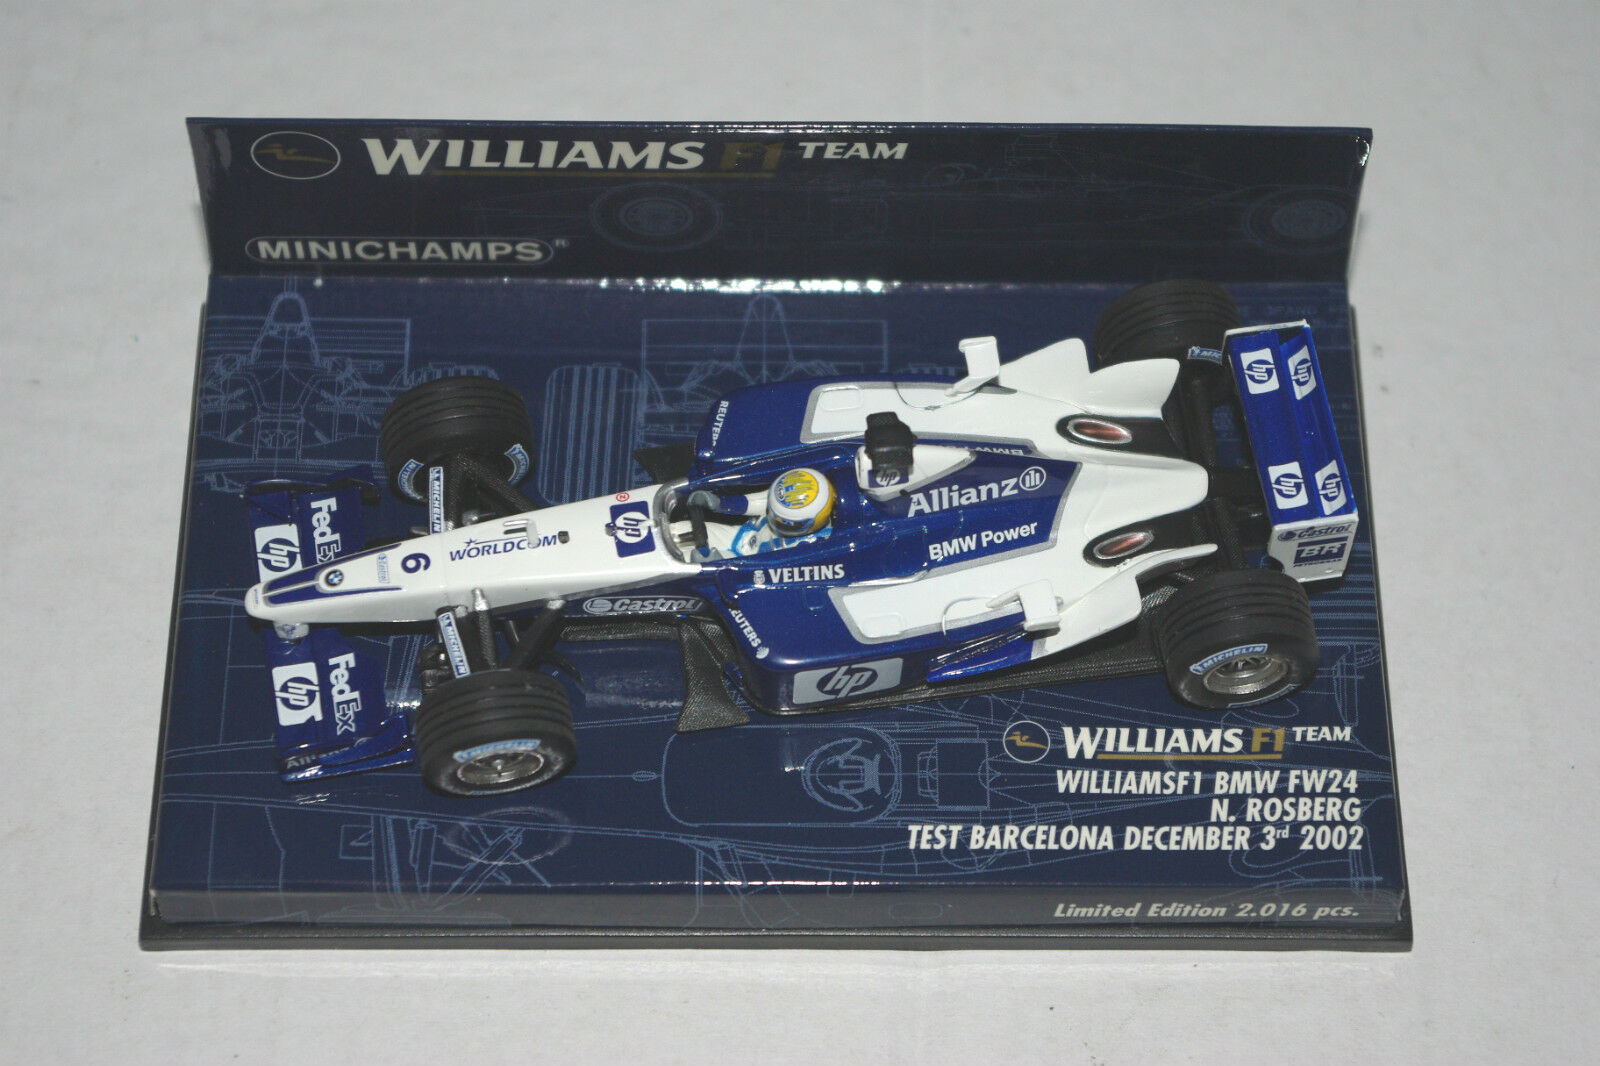 Minichamps F1 1 43 WILLIAMS BMW FW24 NICO ROSBERG TEST BARCELONA 2002 Ltd.Ed.